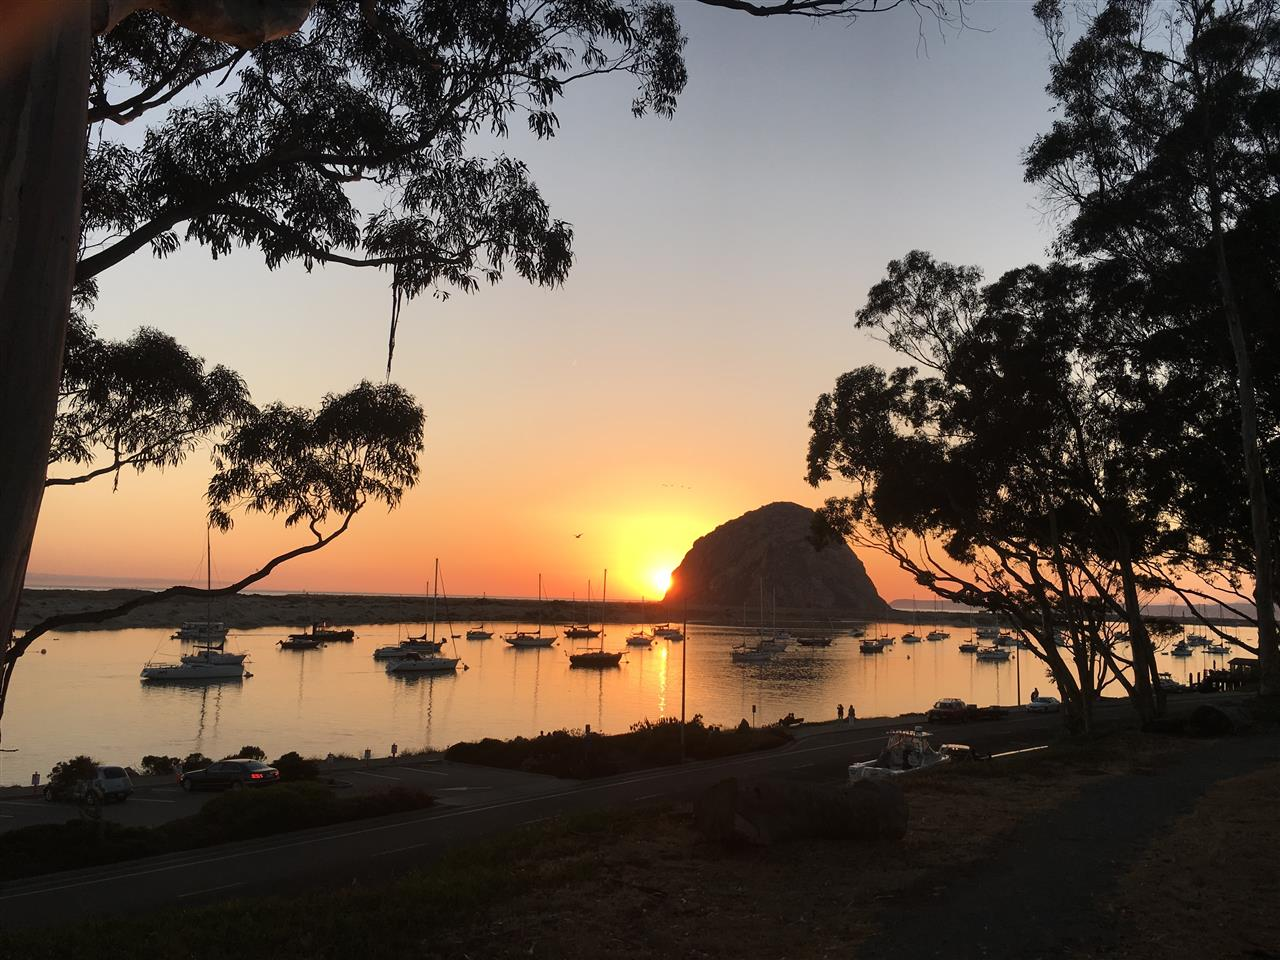 Another colorful sunset in beautiful Morro Bay, California.